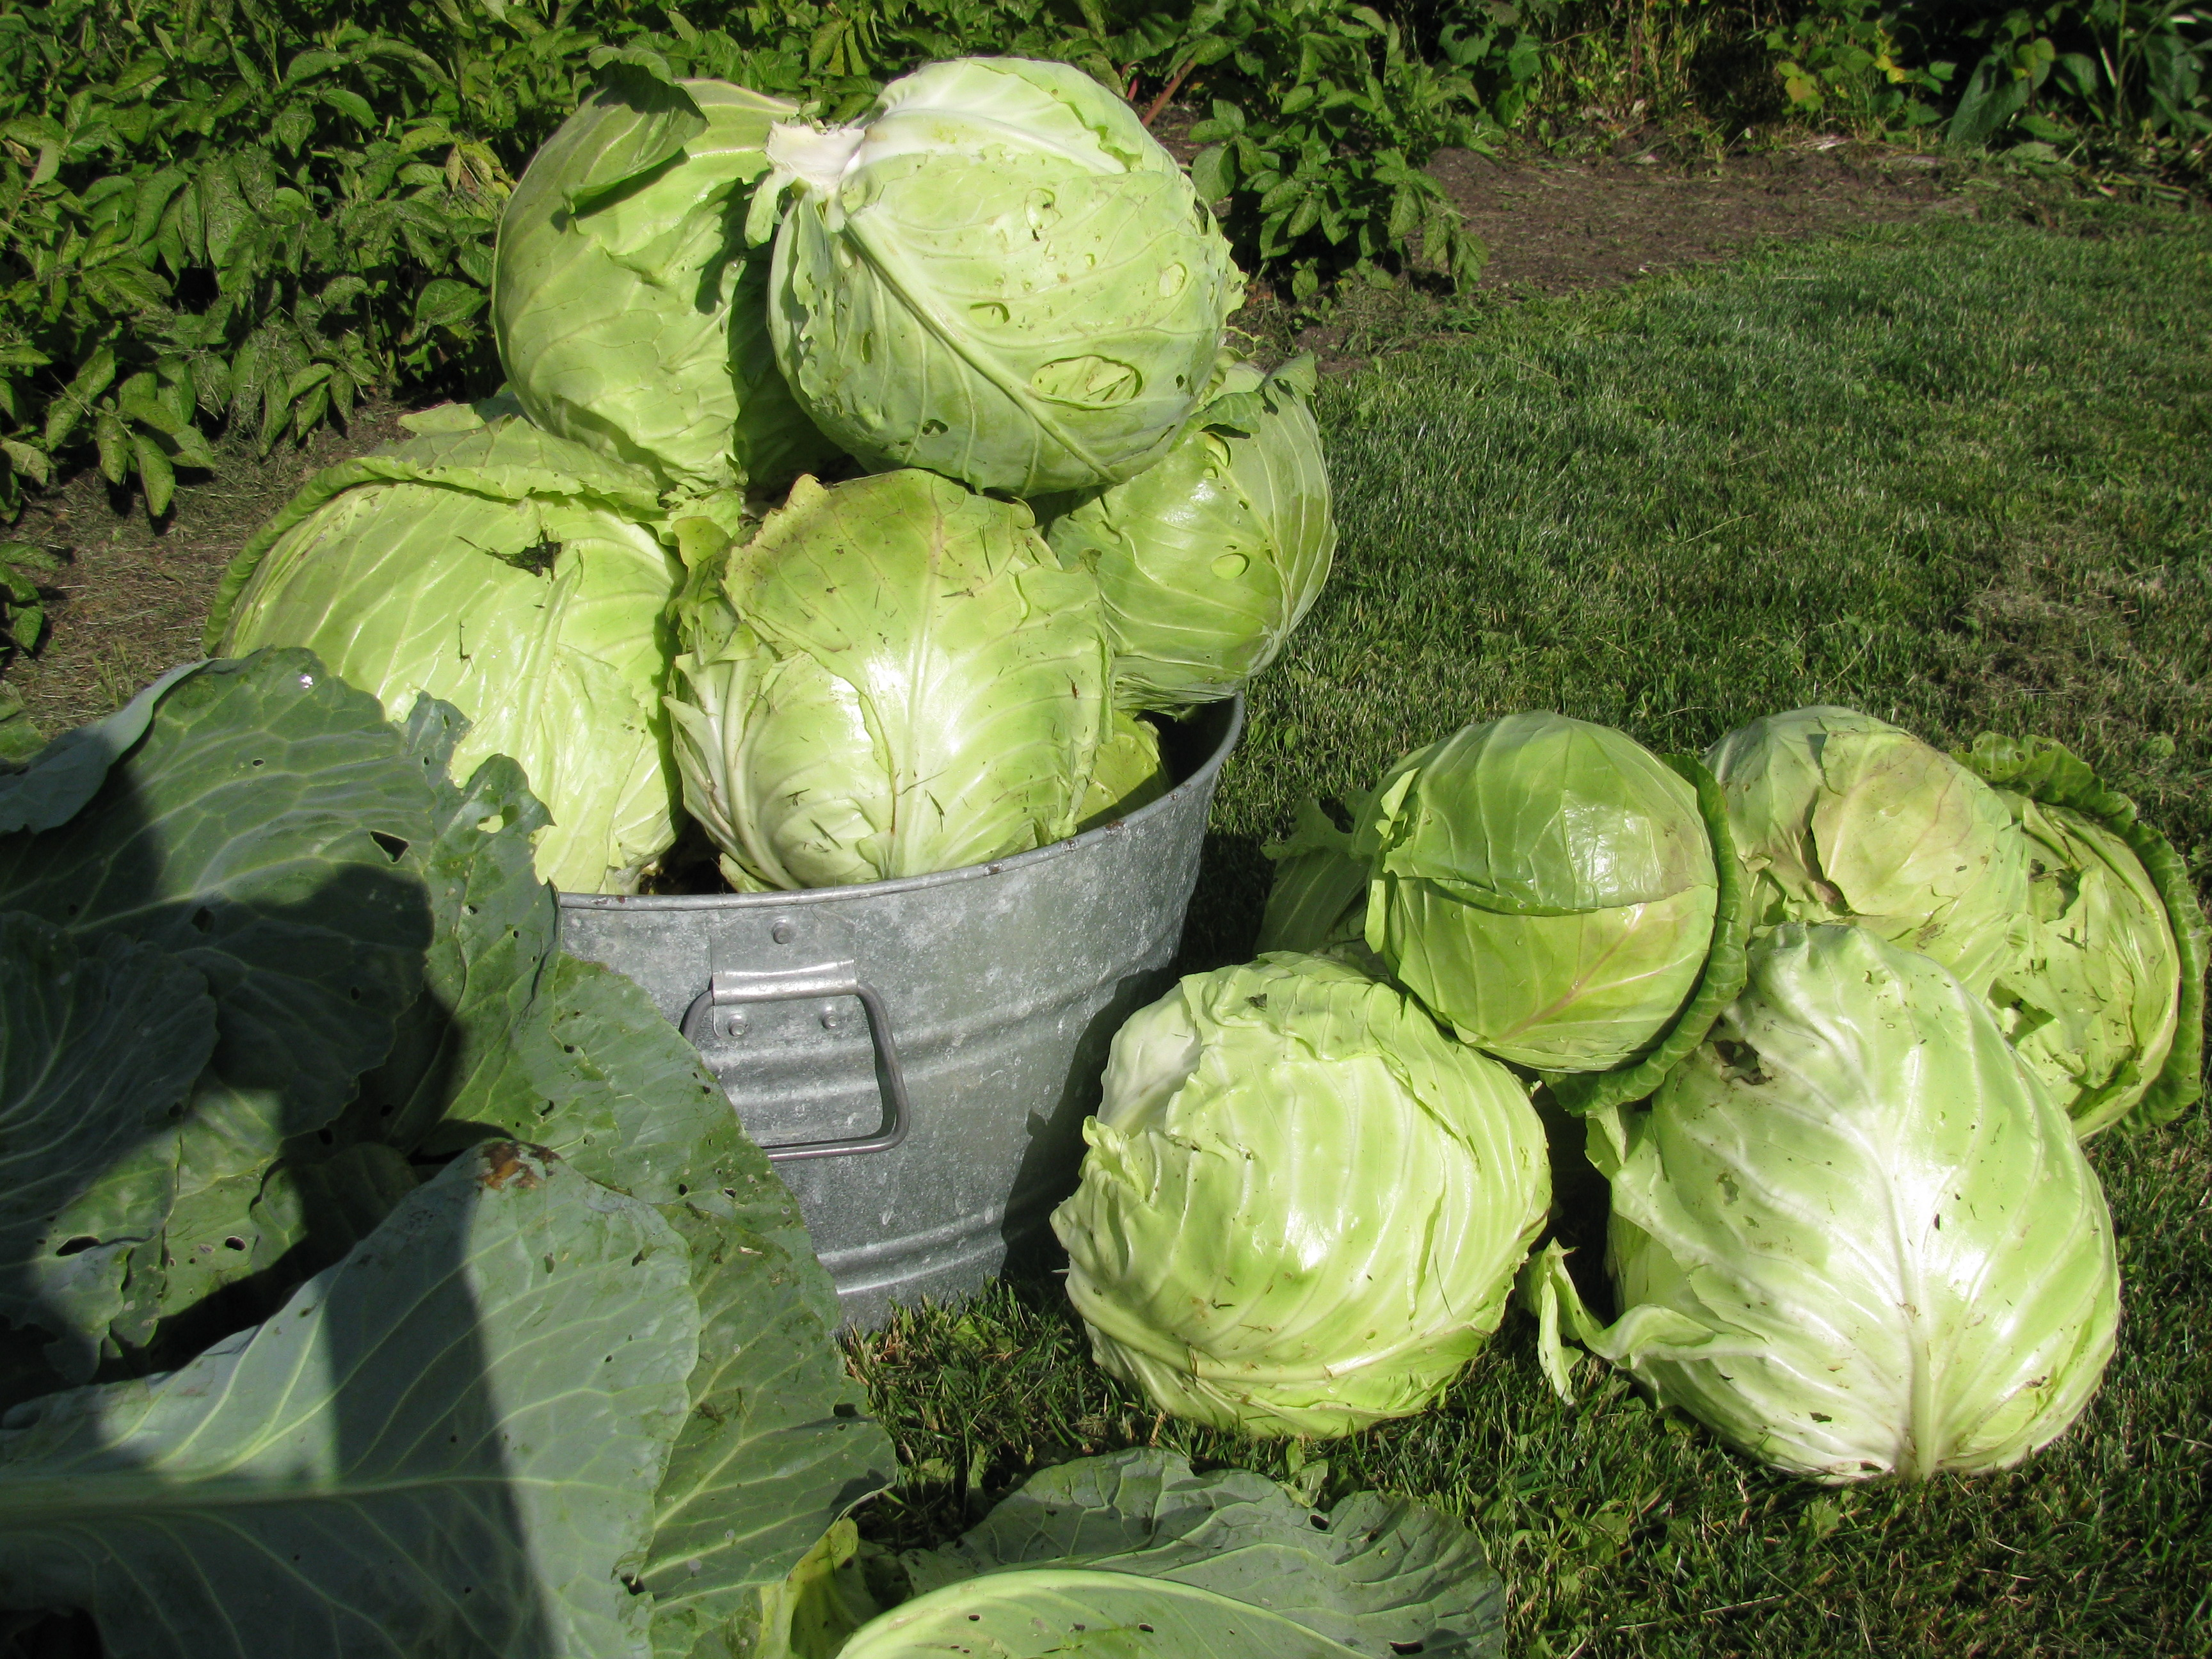 Beautiful cabbages!